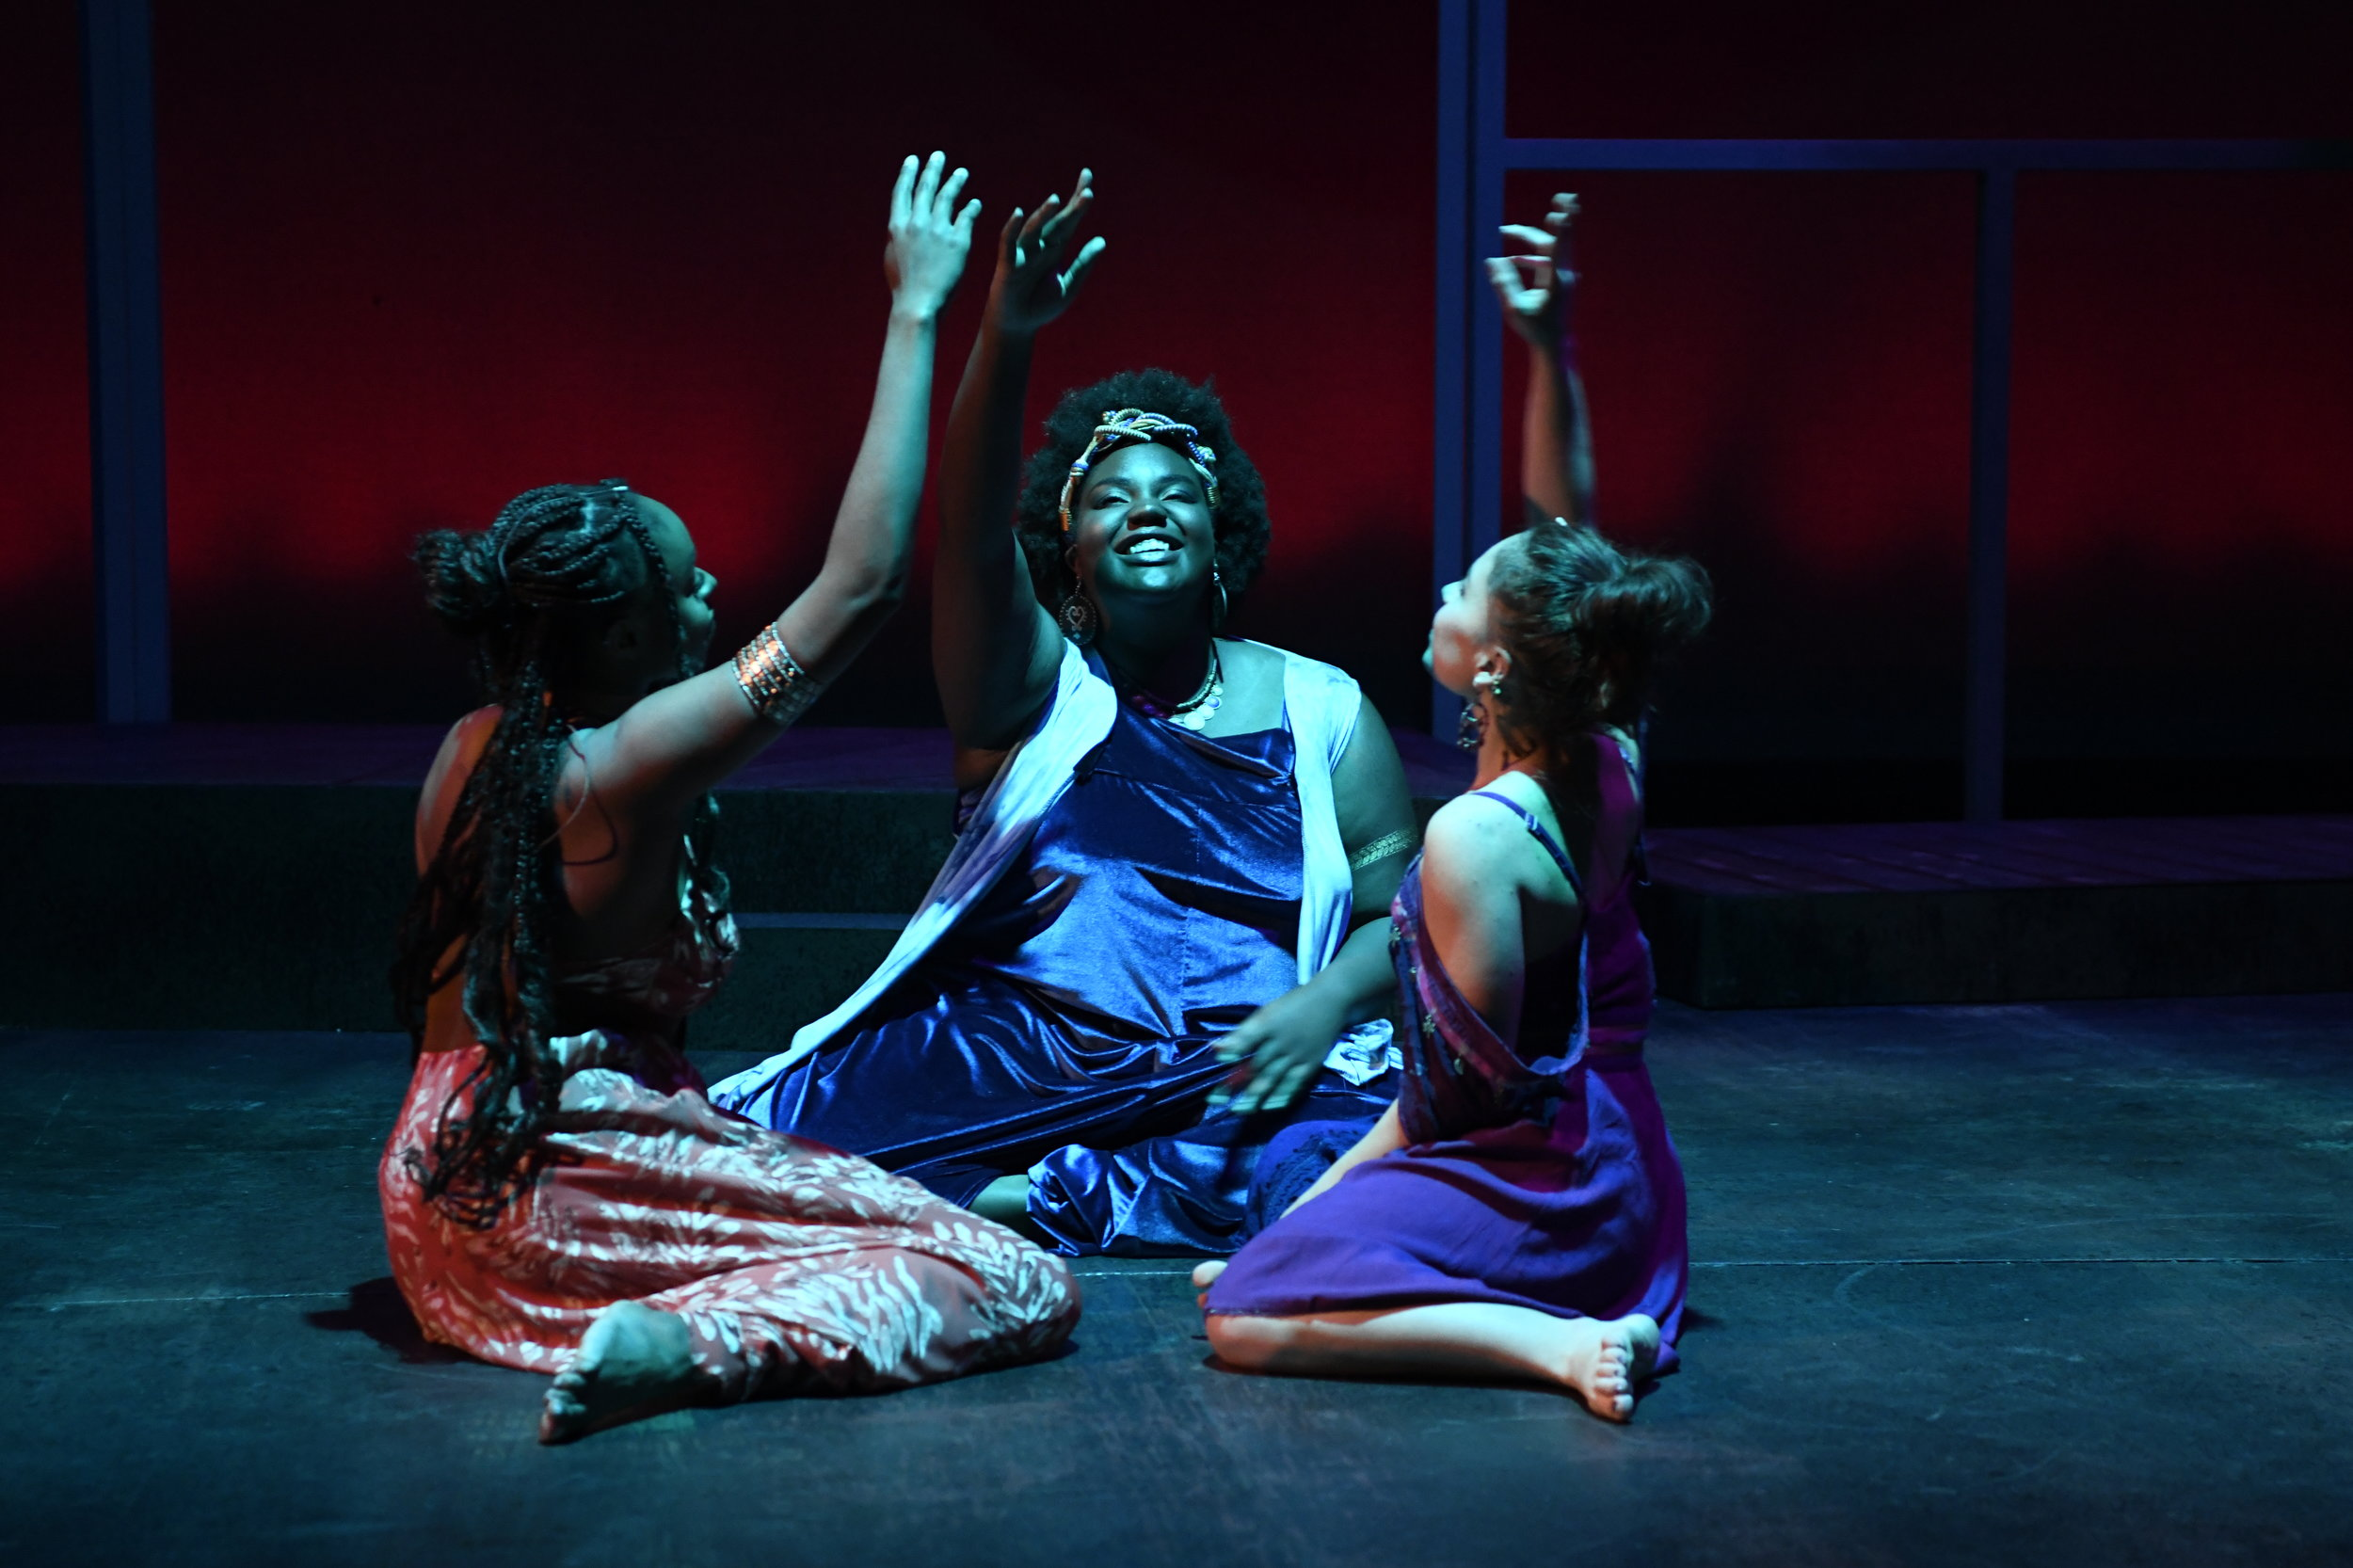 Ifeoma Ukatu as Lady in Orange, Jadae Rose as Lady in Blue, & Cory Sierra as Lady in Purple